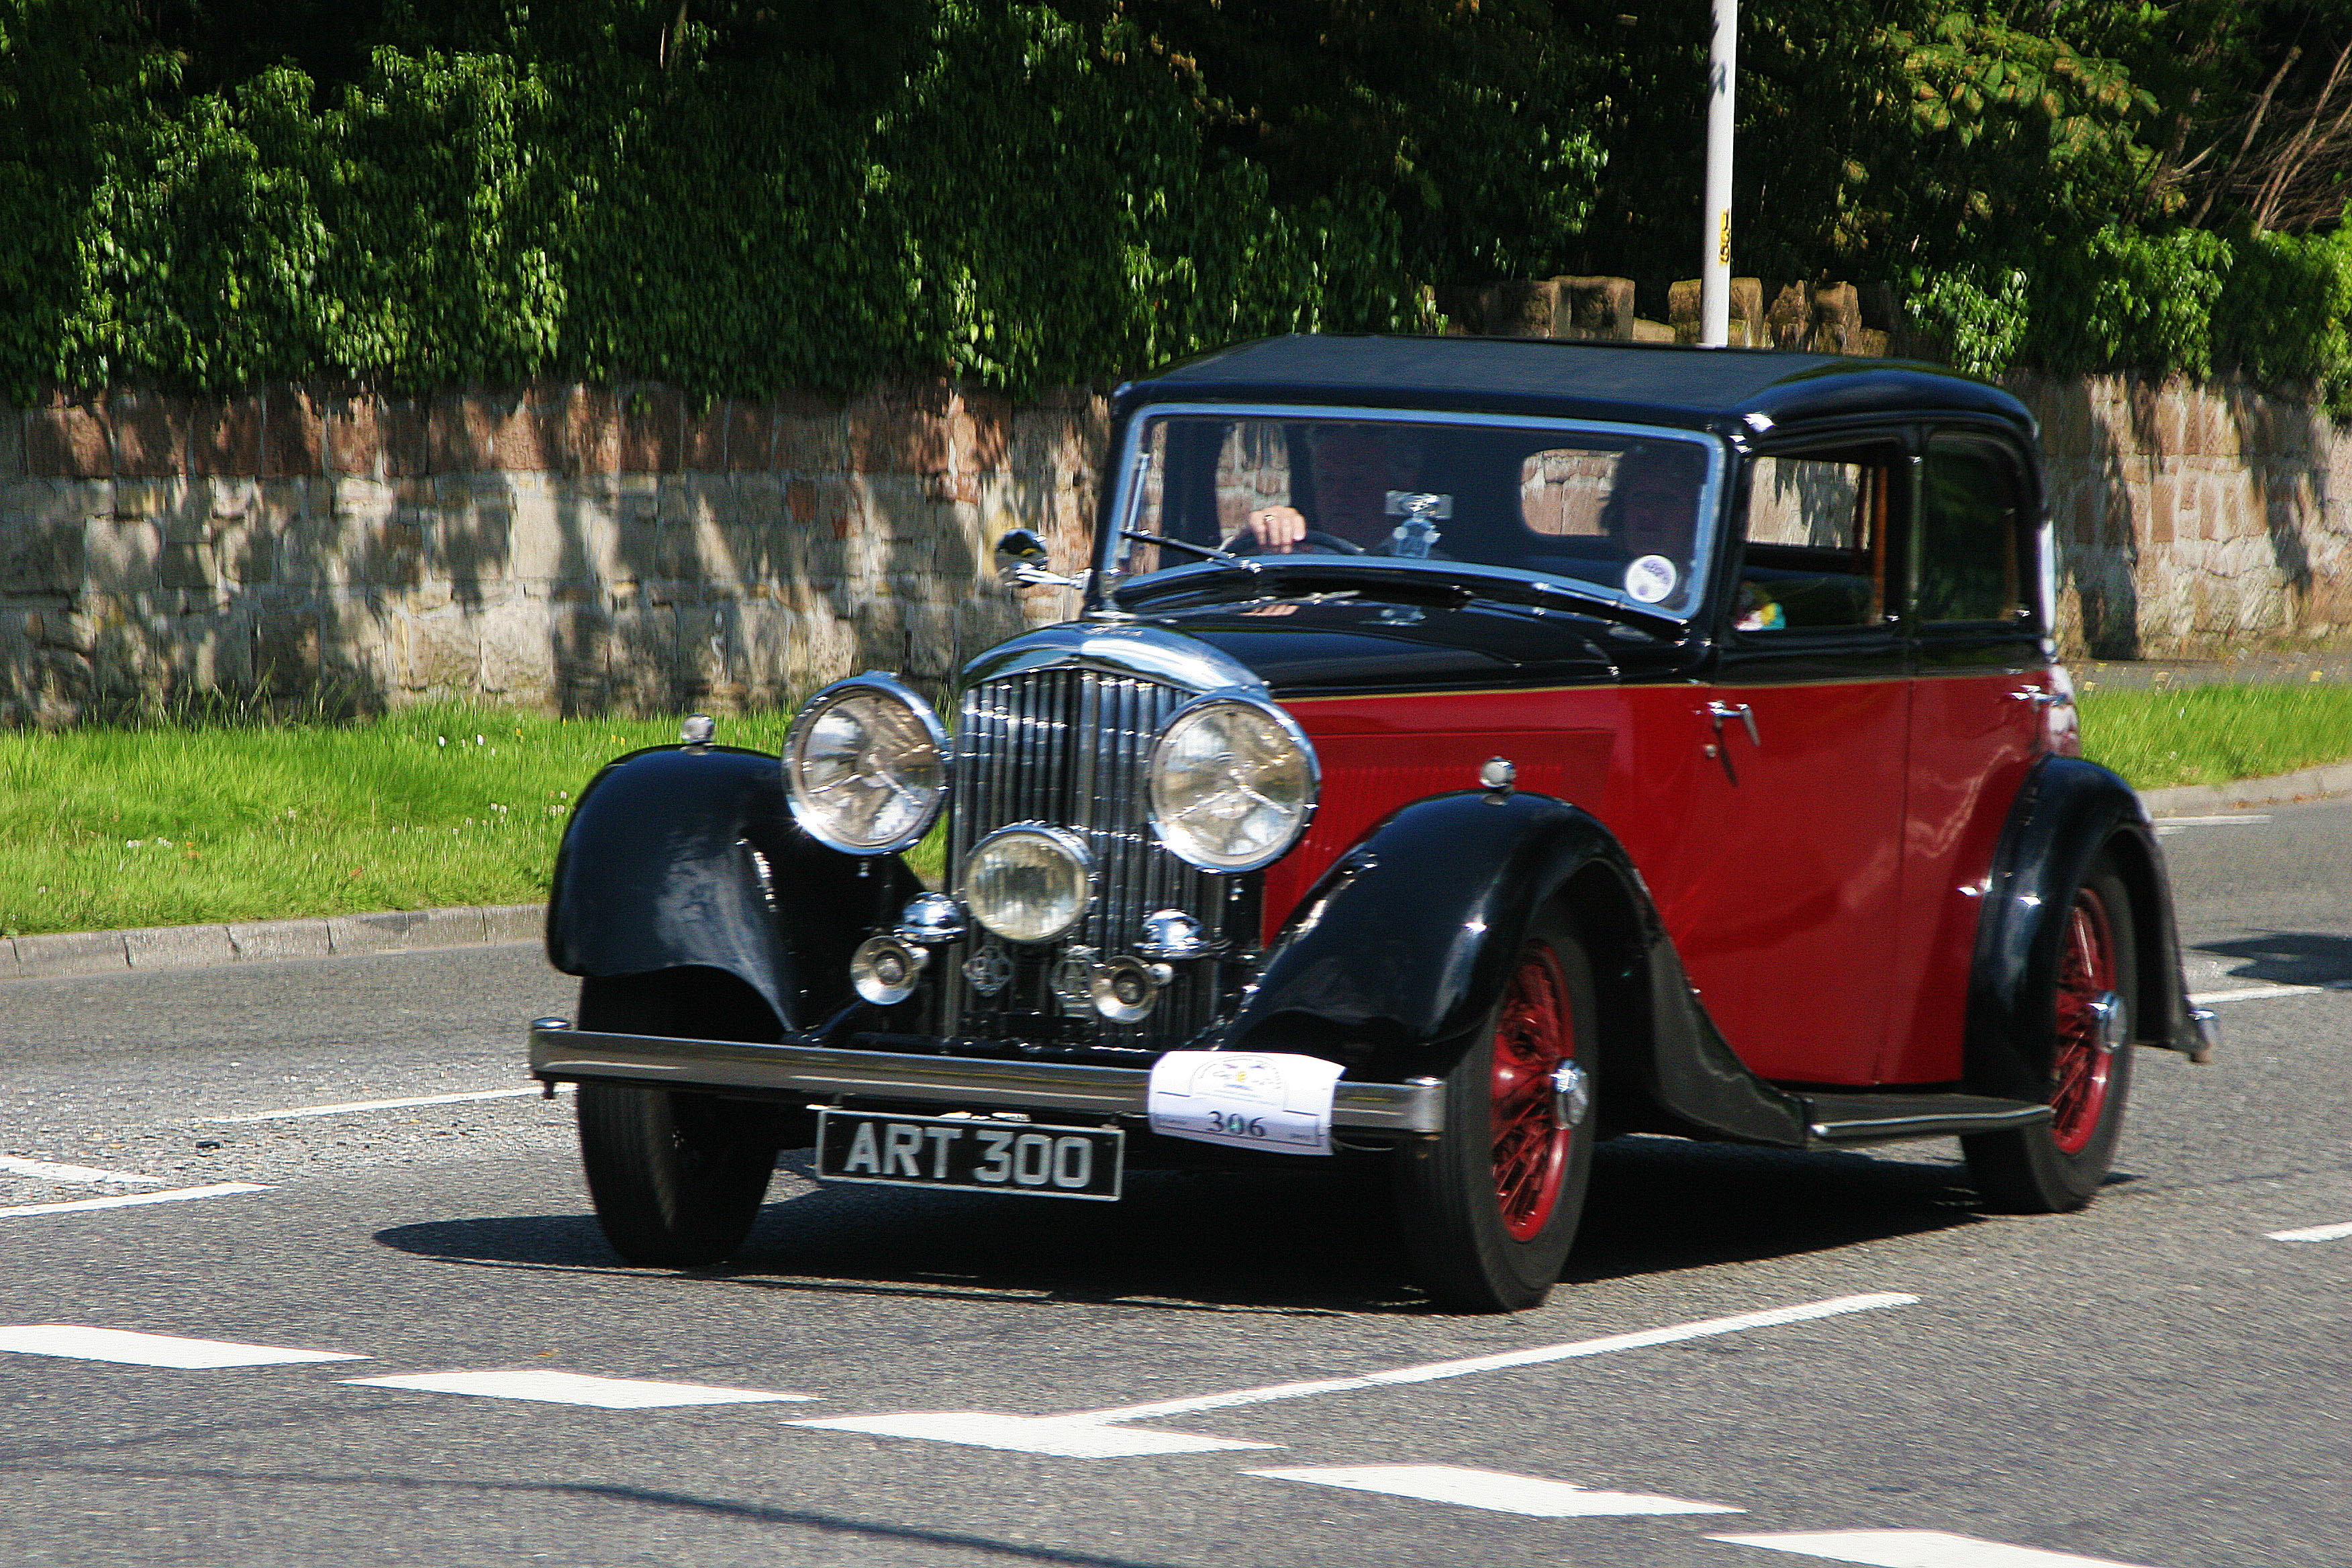 Wirral Historic Vehicle Rally | briansimpsons